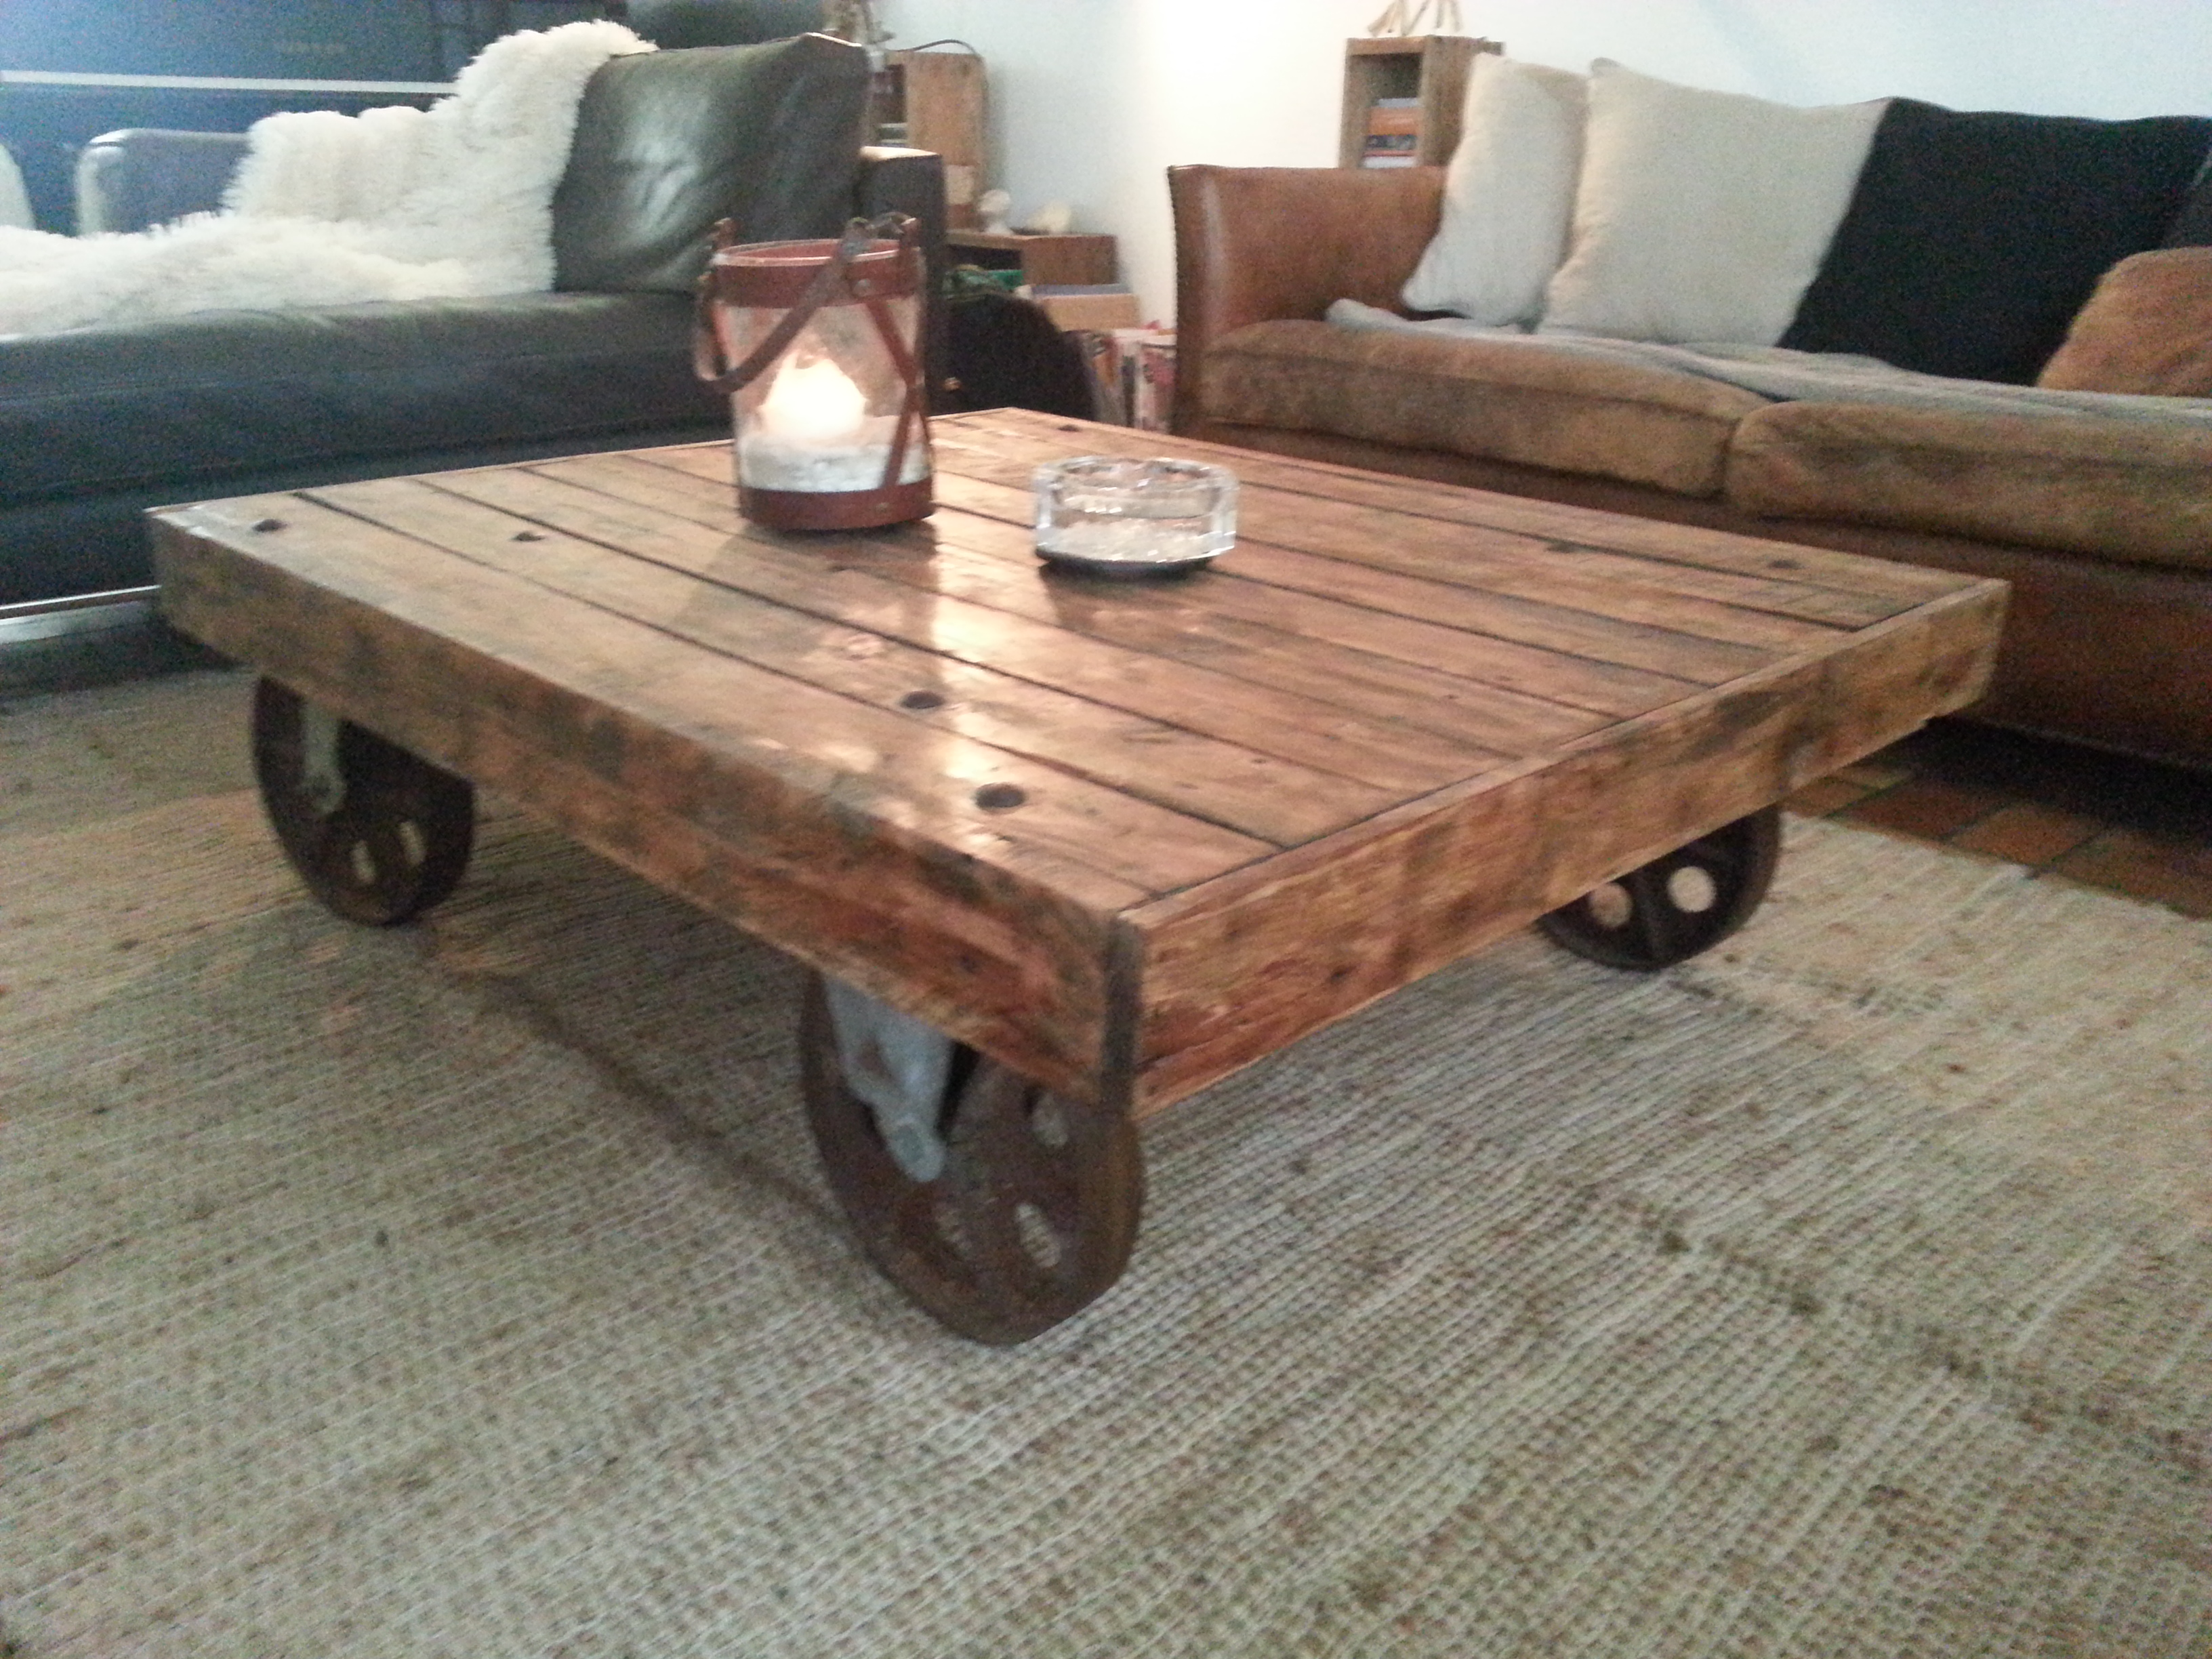 Sur Palette Roue Creation Basse Table Ib7gvY6fy